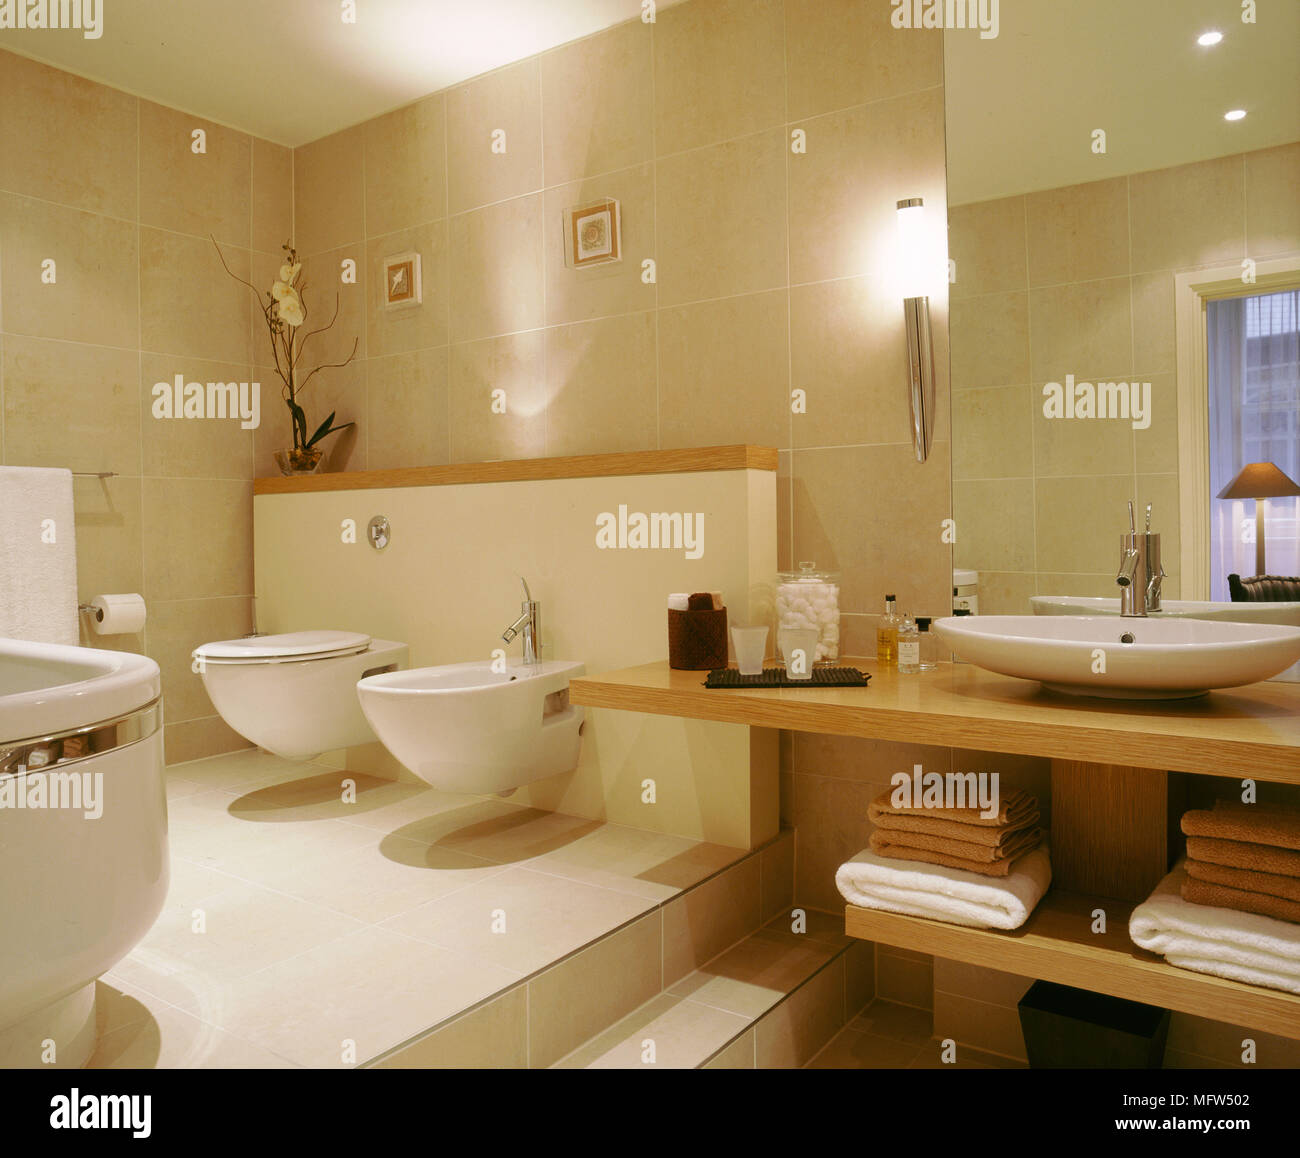 moderne neutrale badezimmer wc bidet waschbecken auf holz einheit indirekte beleuchtung. Black Bedroom Furniture Sets. Home Design Ideas